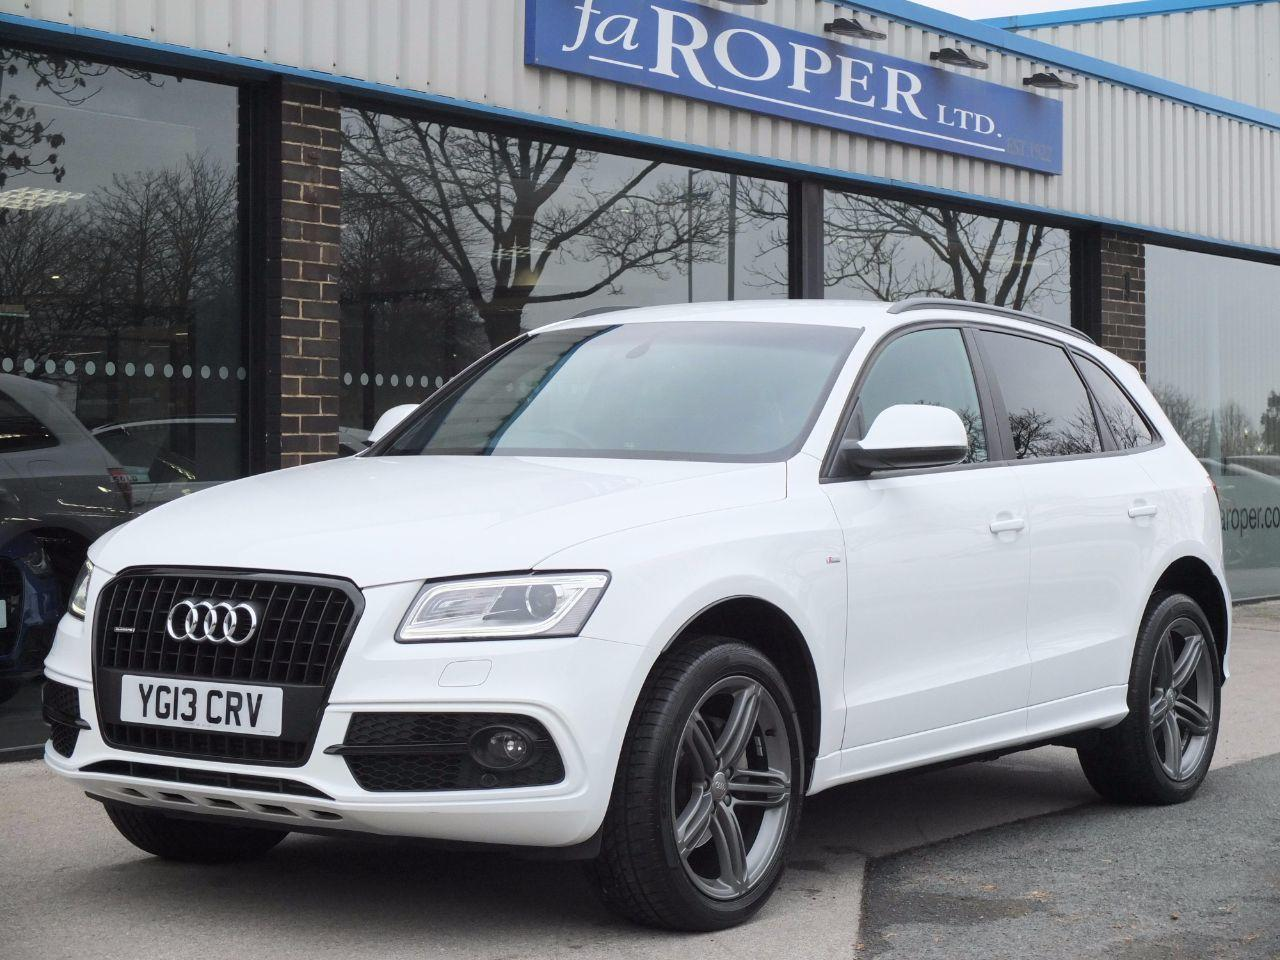 Audi Q5 2.0 TDI quattro S Line Plus S Tronic 177ps (Tech Pack) Estate Diesel Ibis White